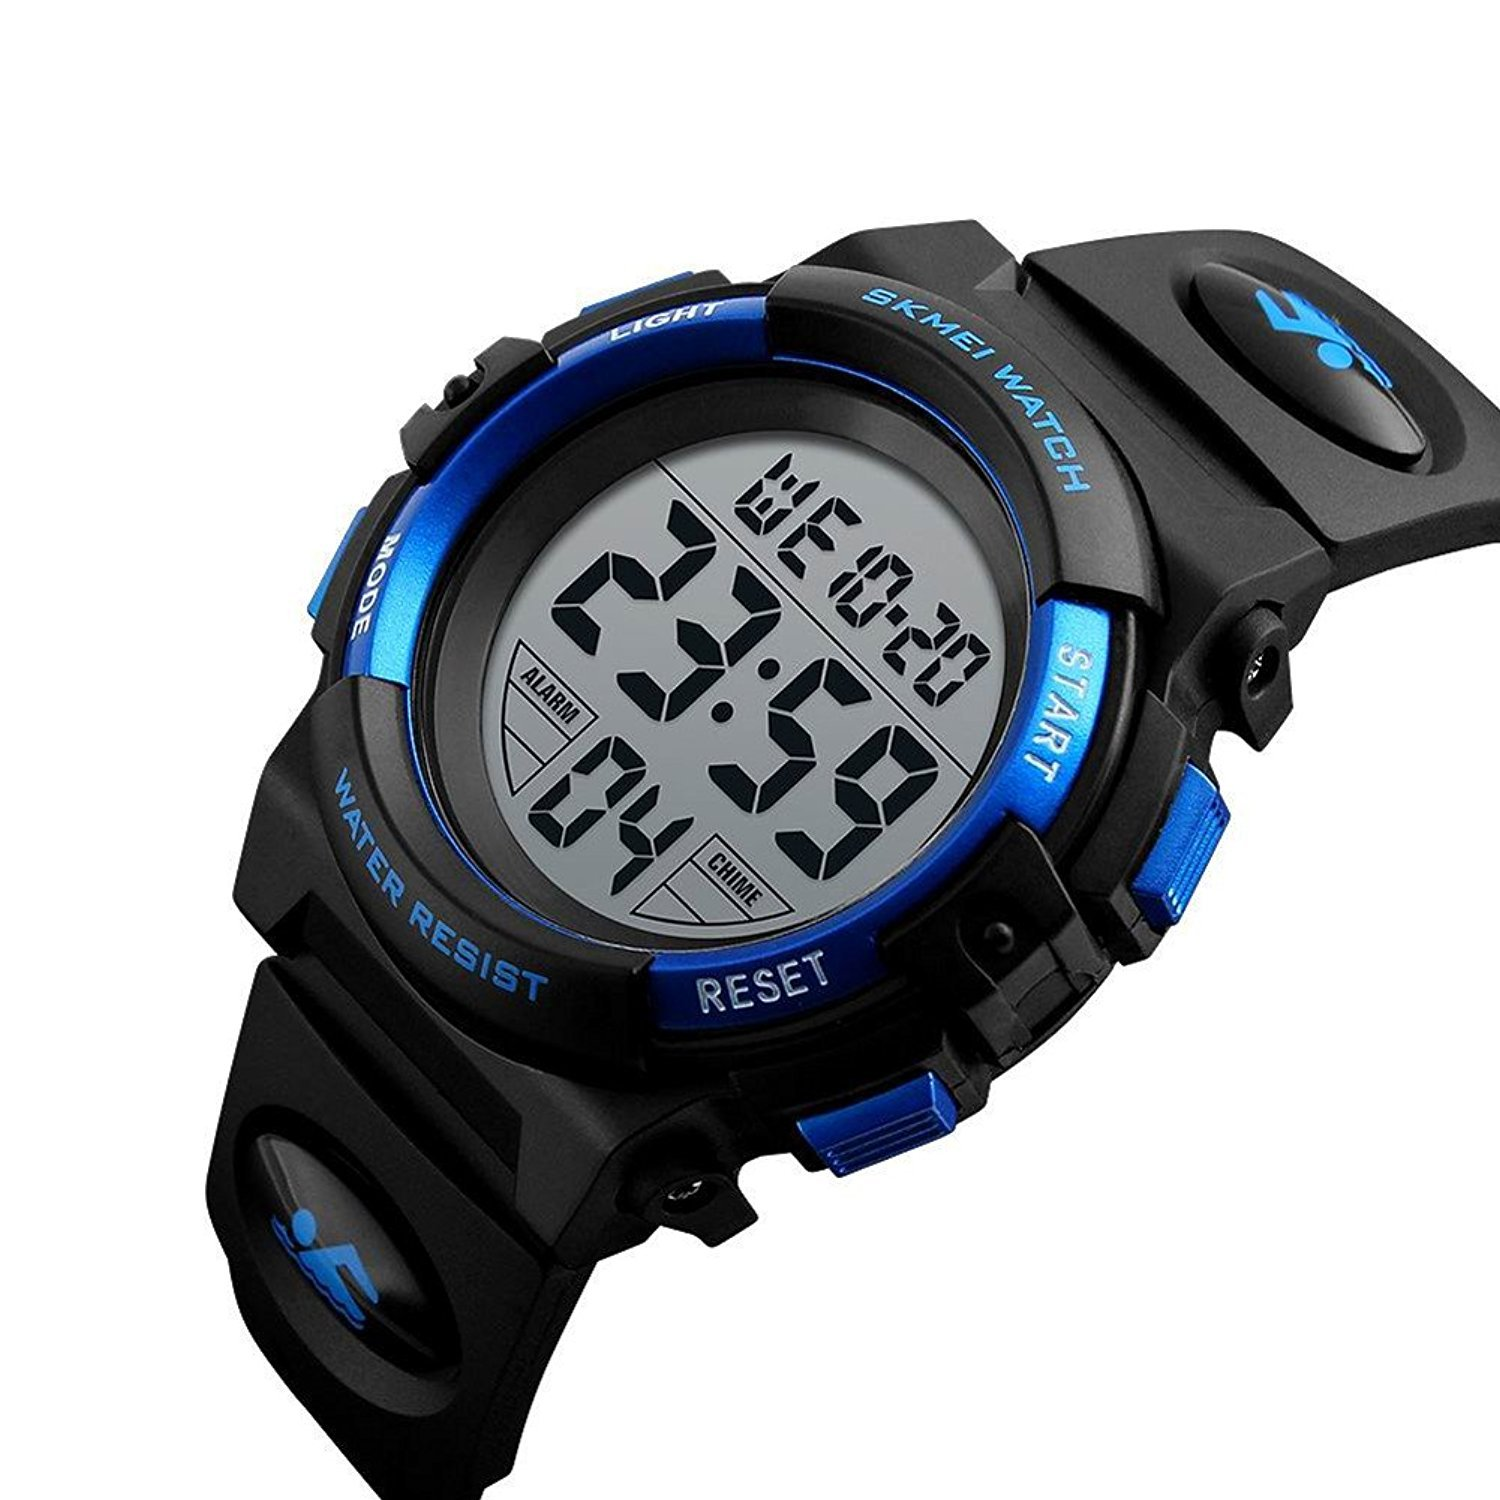 Kids Outdoor Sports Children's Waterproof Wrist Dress Watch with LED Digital Alarm Stopwatch Lightweight Silicone for Boy Girl (White)